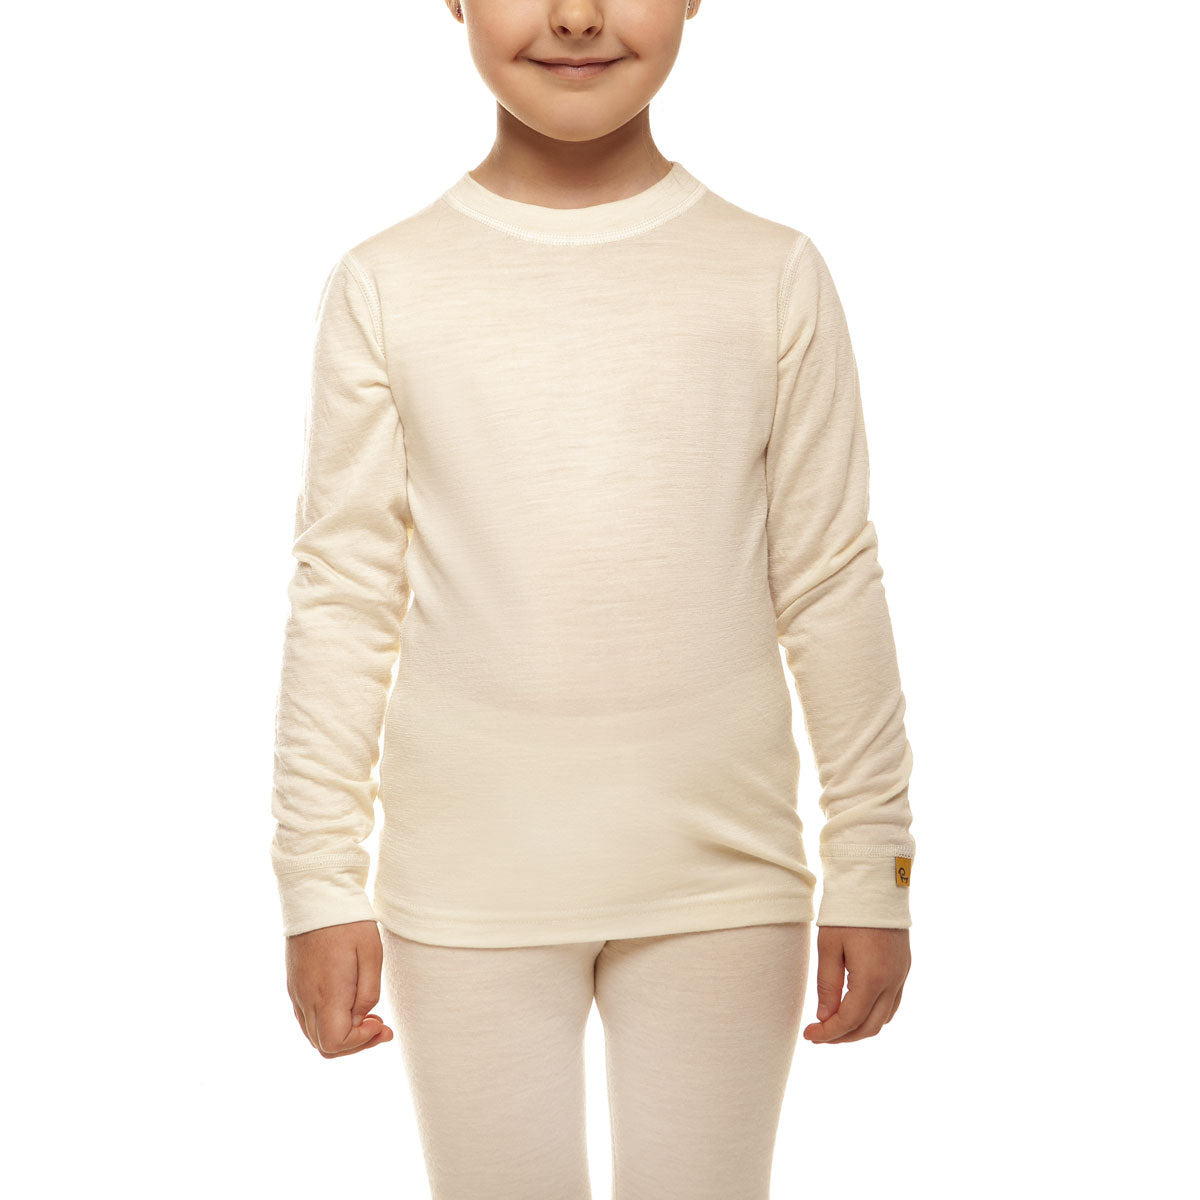 menique Kids' Merino 160 Long Sleeve Crew Natural Color